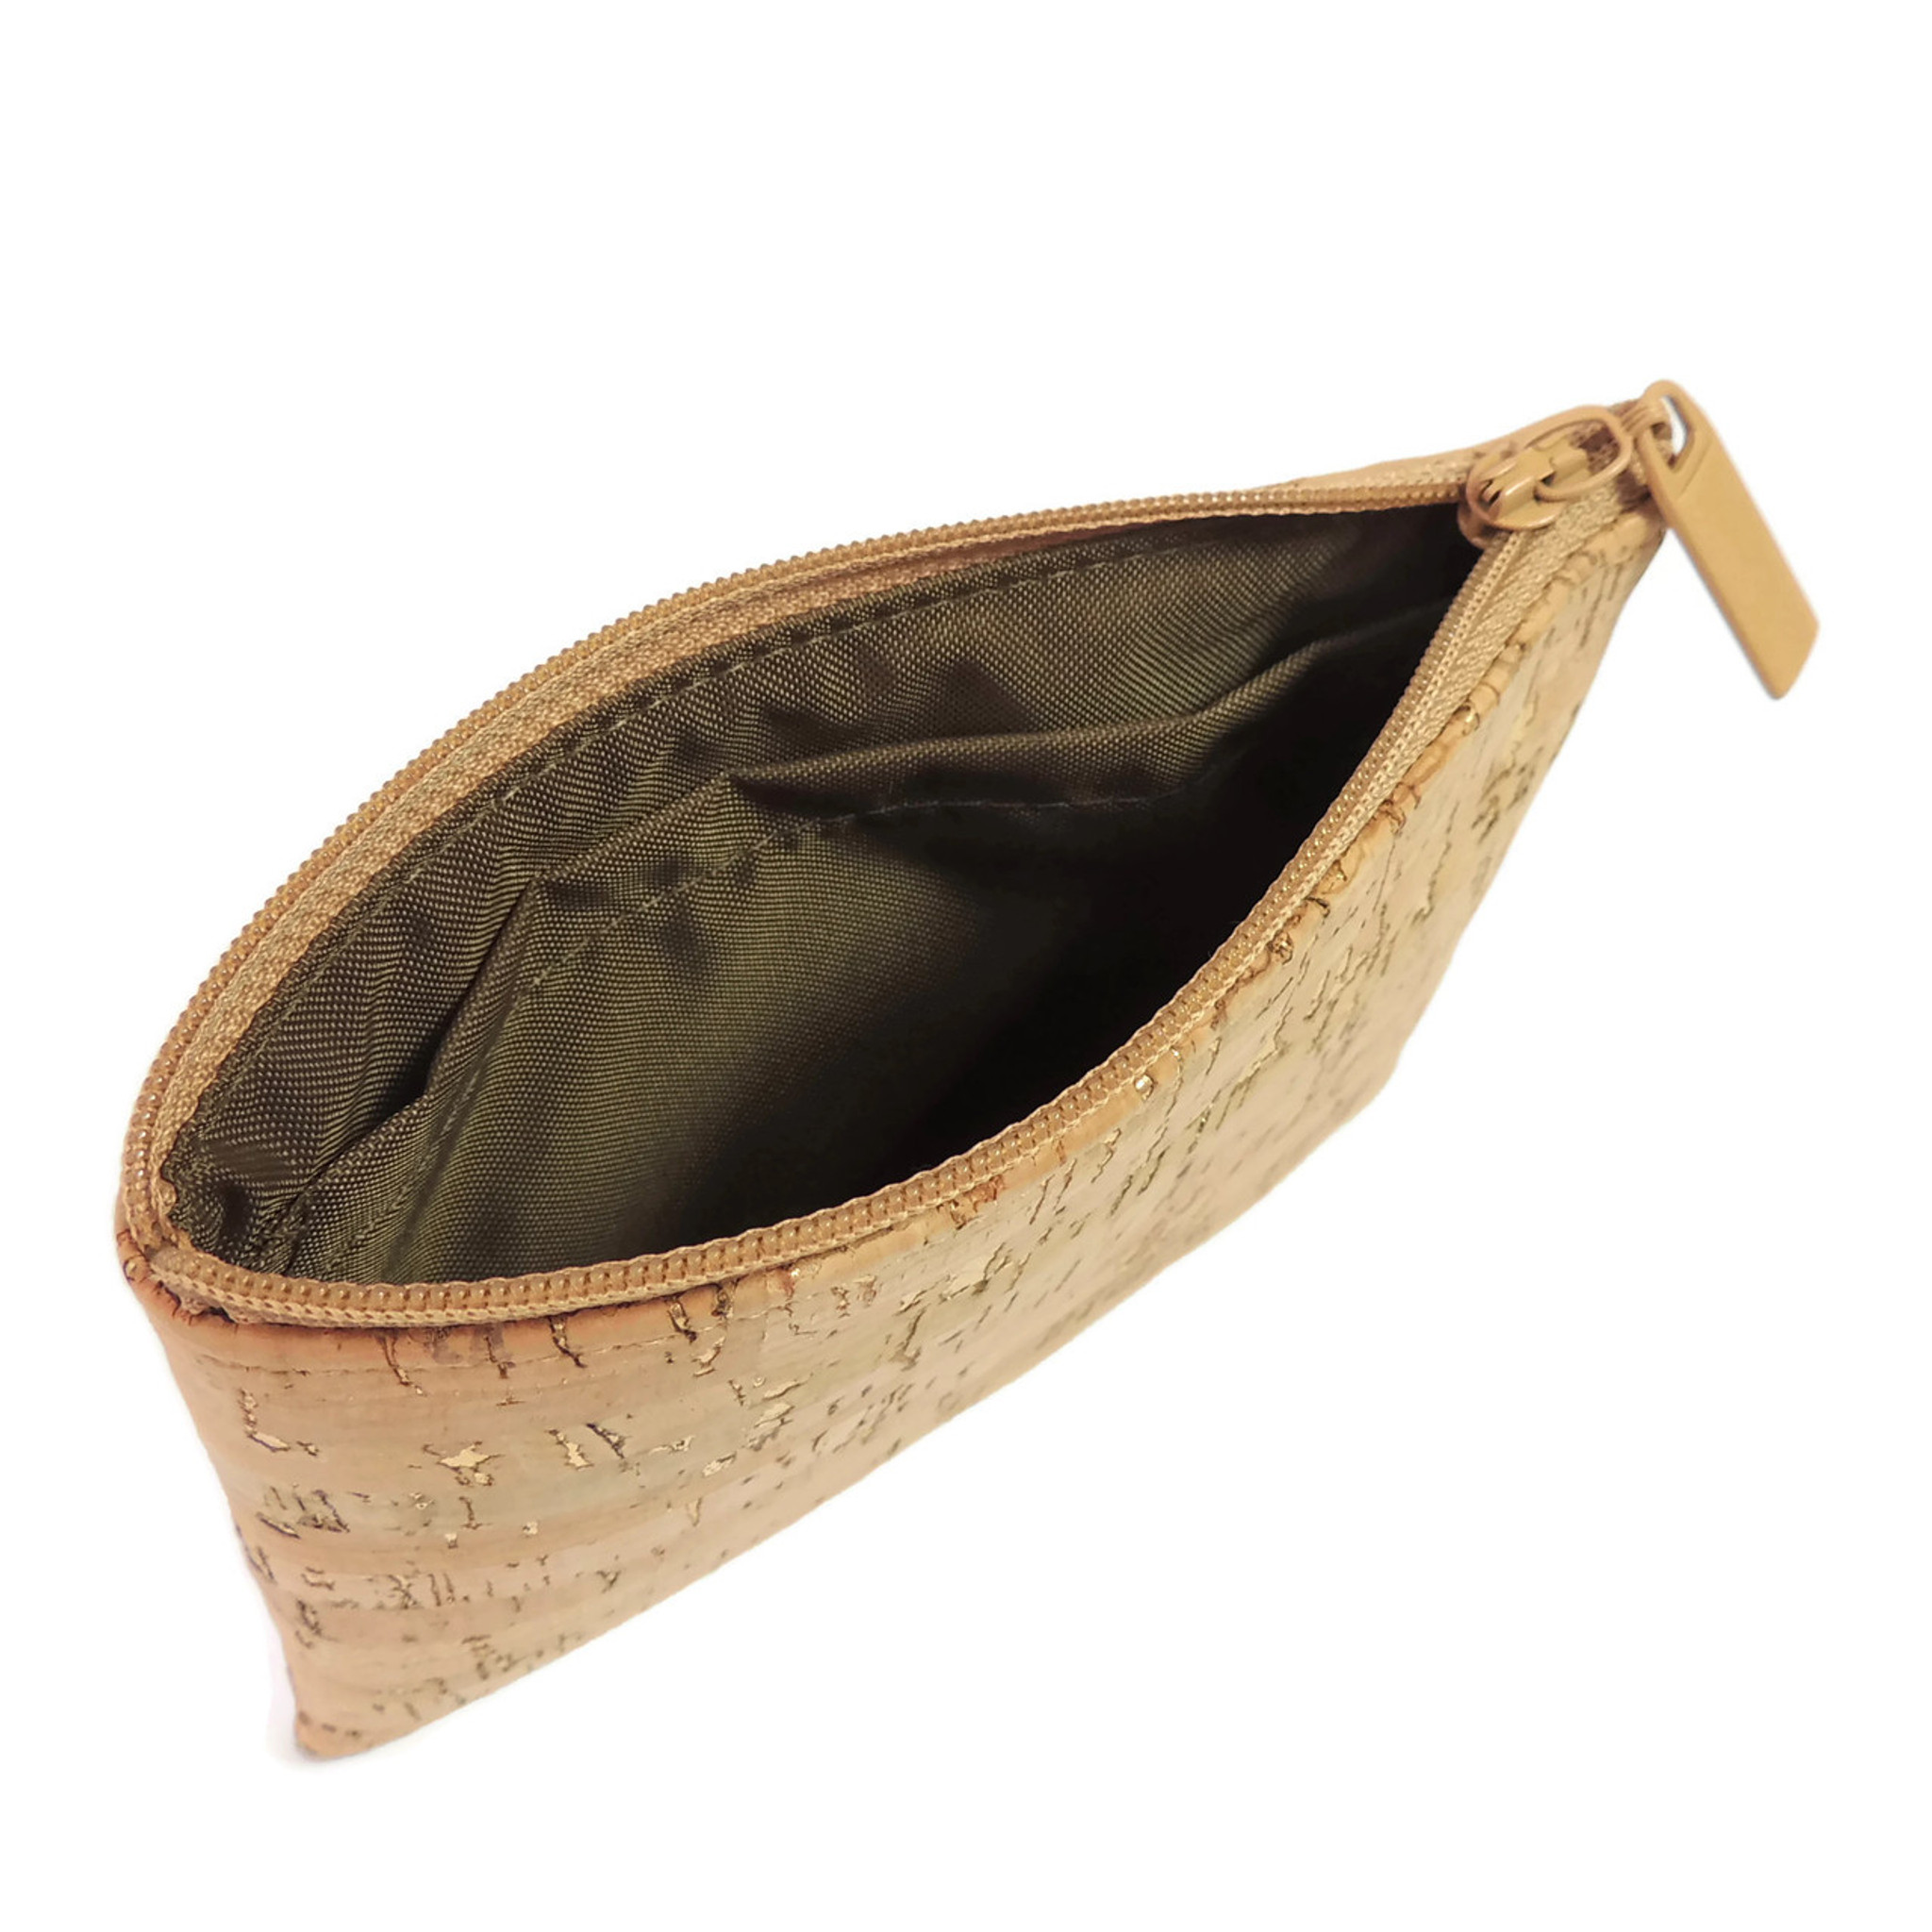 All-Purpose Pouch in Natural Cork